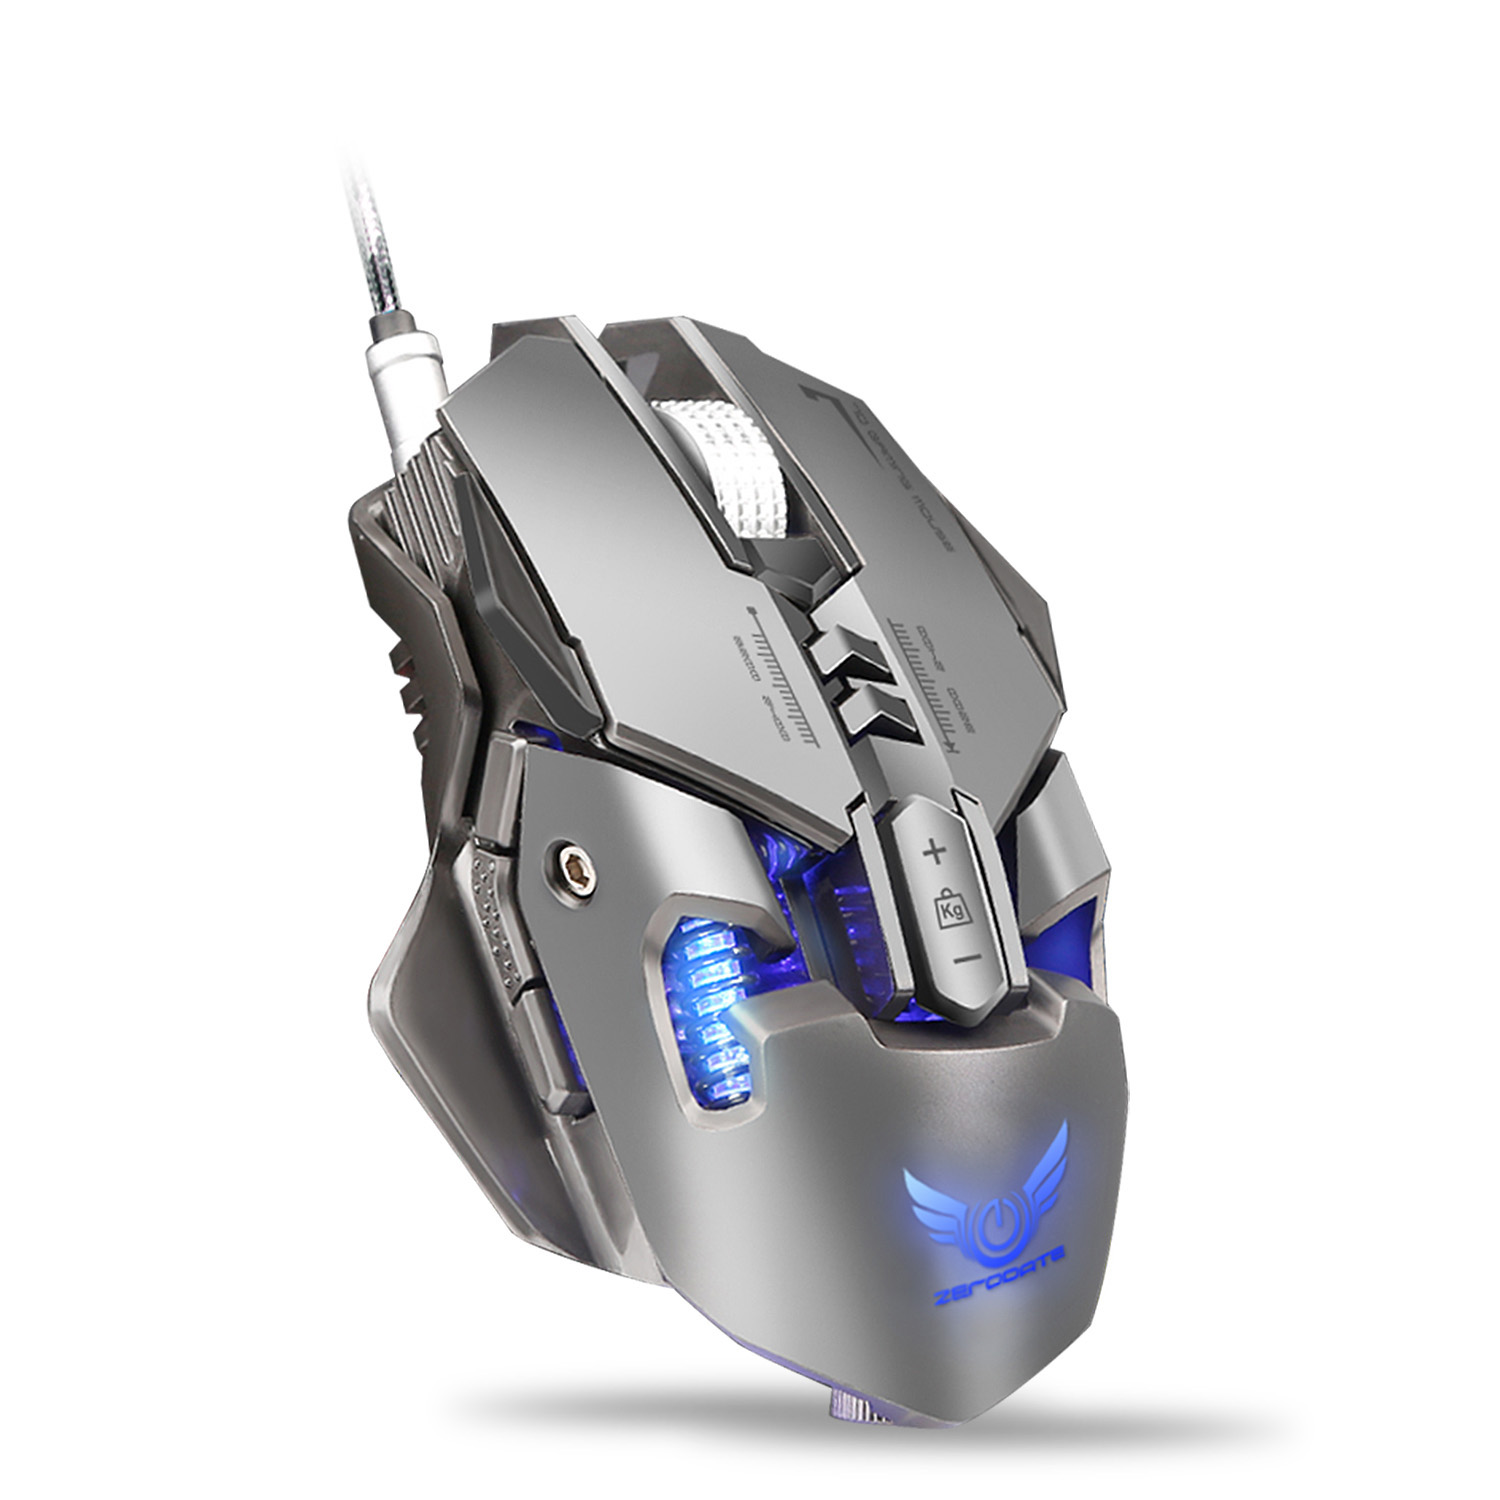 New ZERODATE X300GY High Quality 4000DPI Professional Wired Mouse Gaming Computer Mouse Mice Optical Mouse